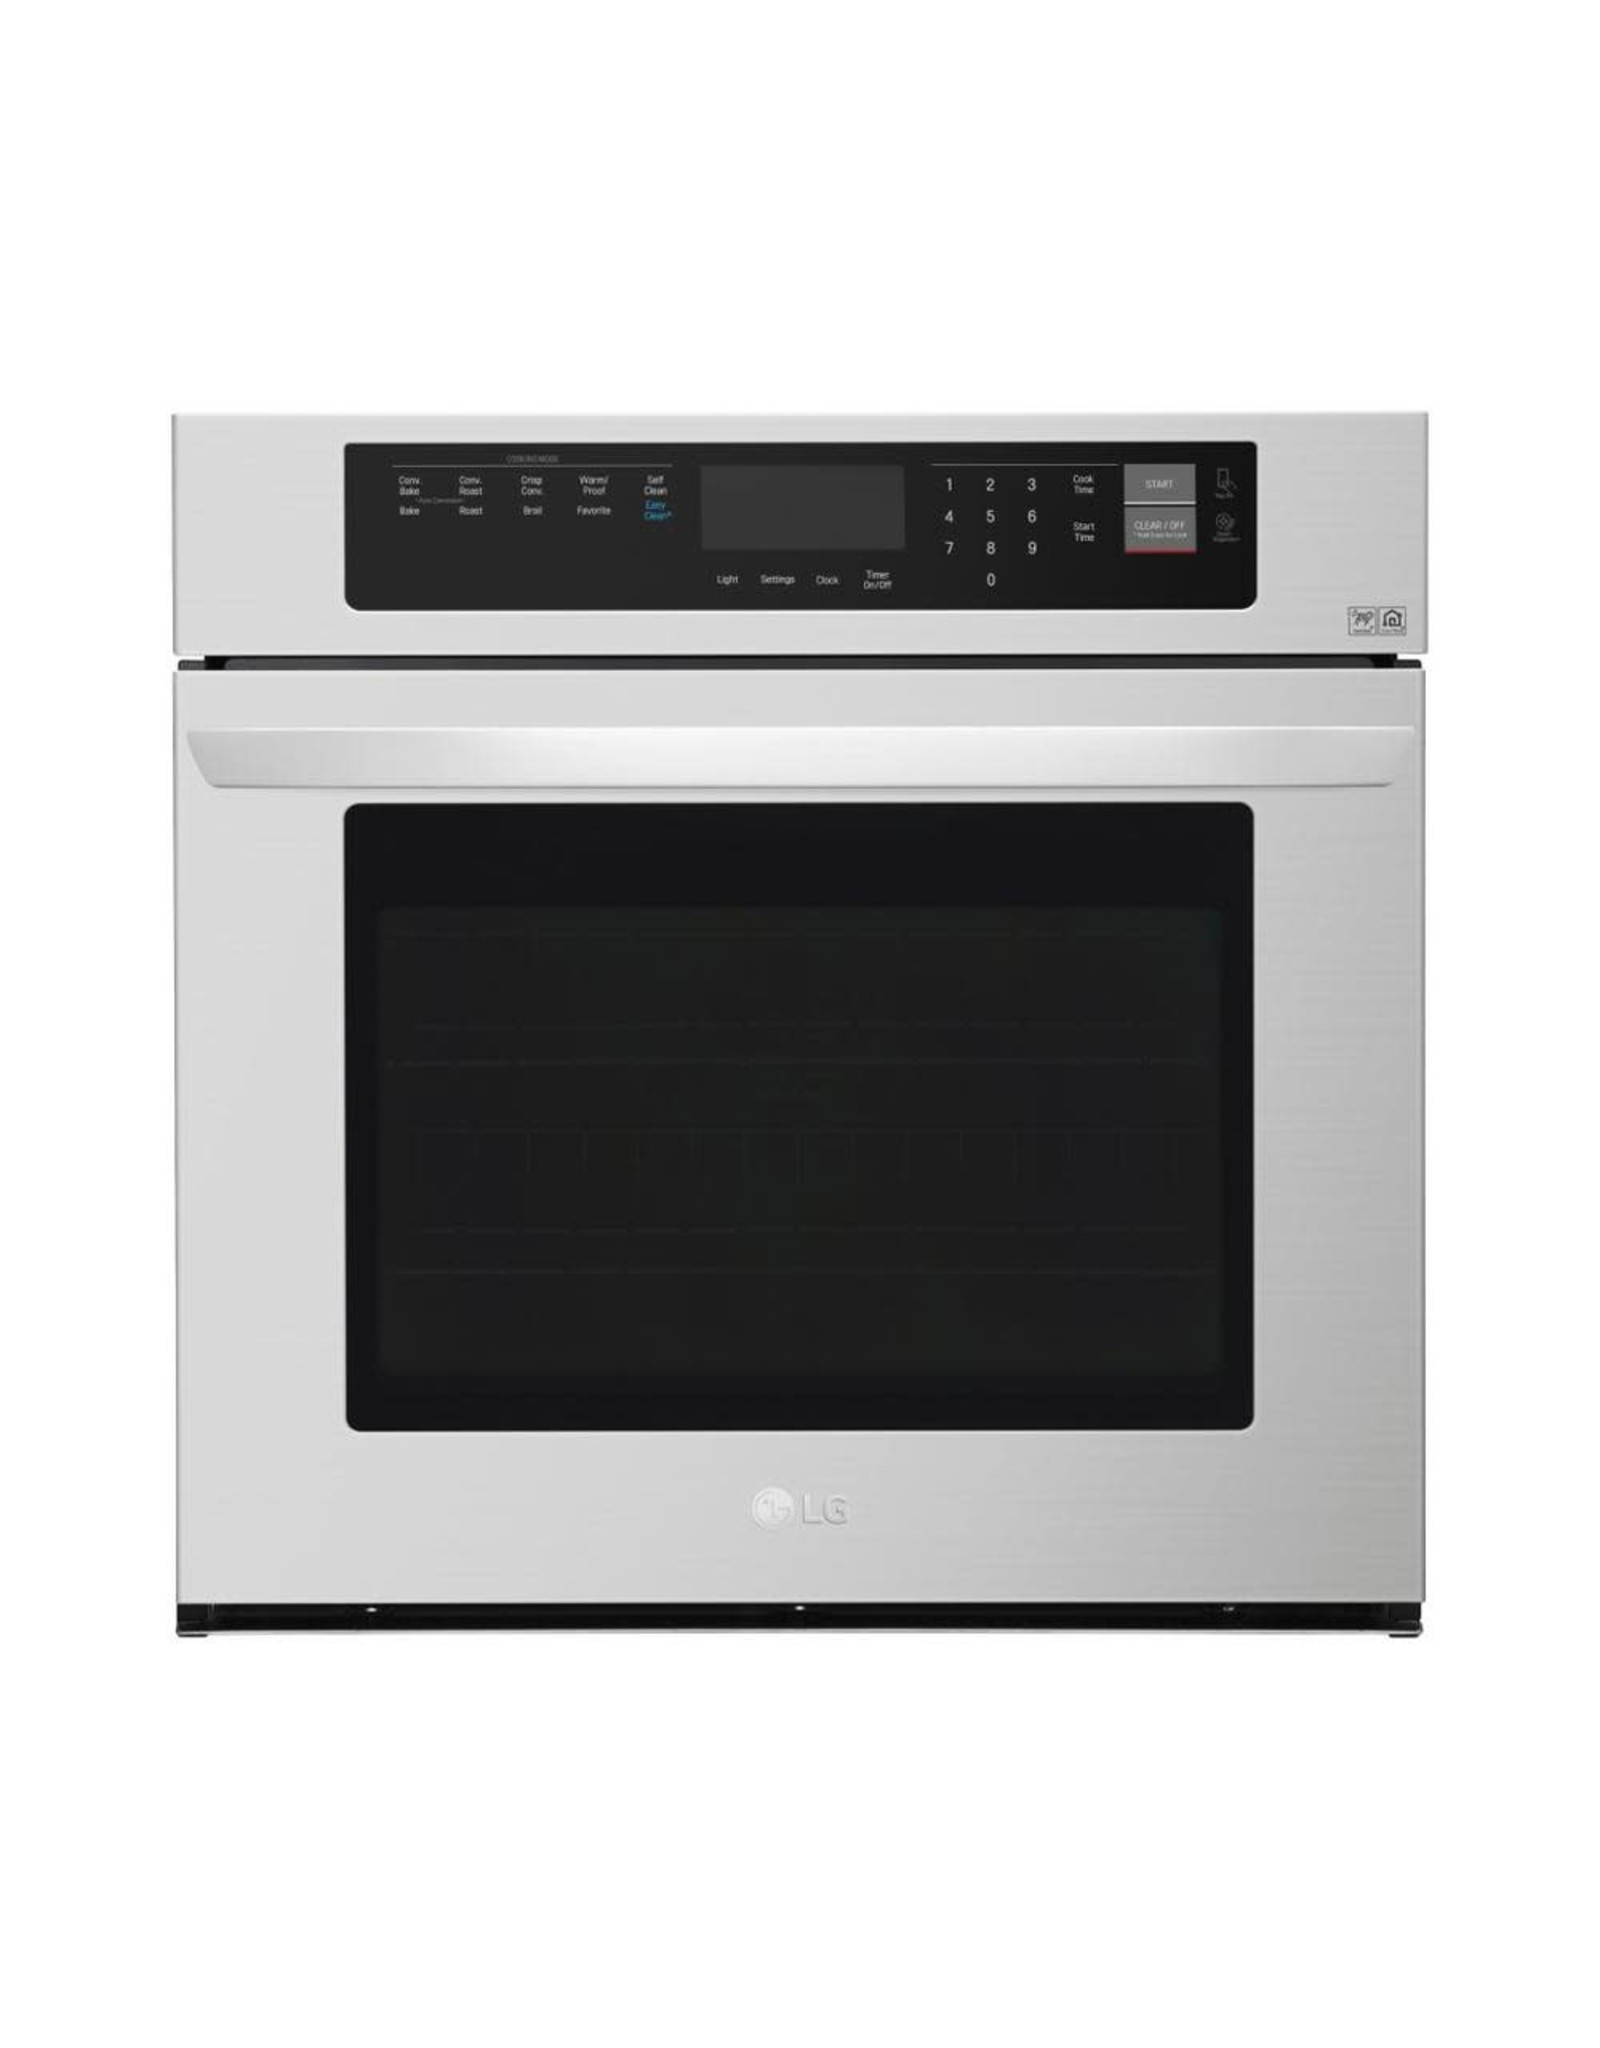 LG Electronics LWS3063ST 30 in. Single Electric Wall Oven with Convection and EasyClean in Stainless Steel